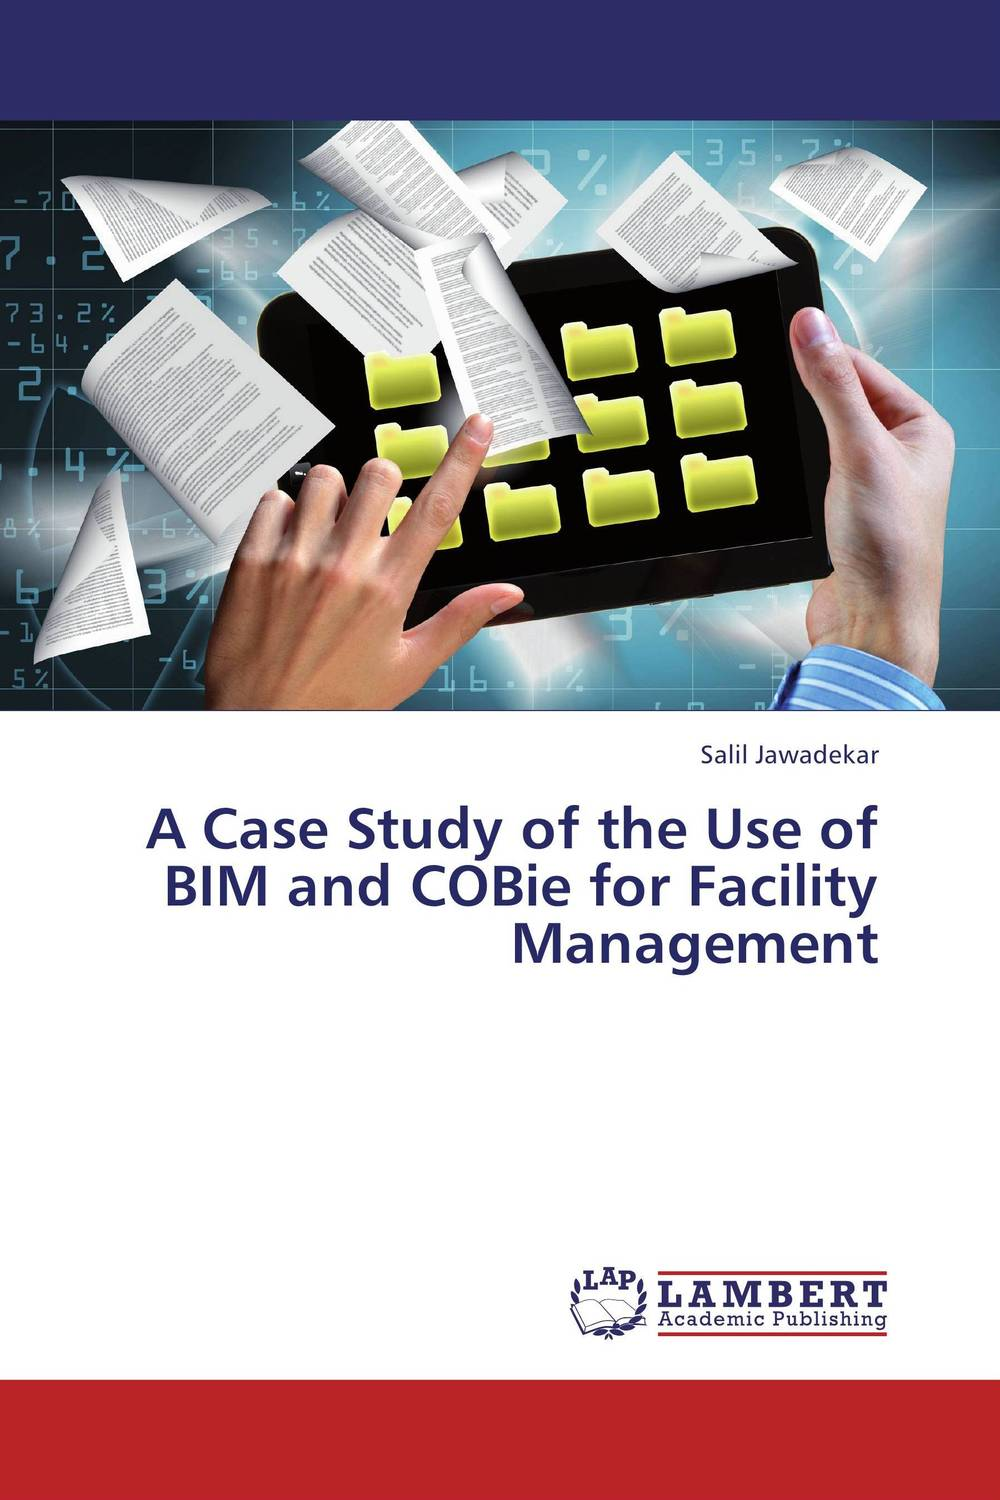 A Case Study of the Use of BIM and COBie for Facility Management